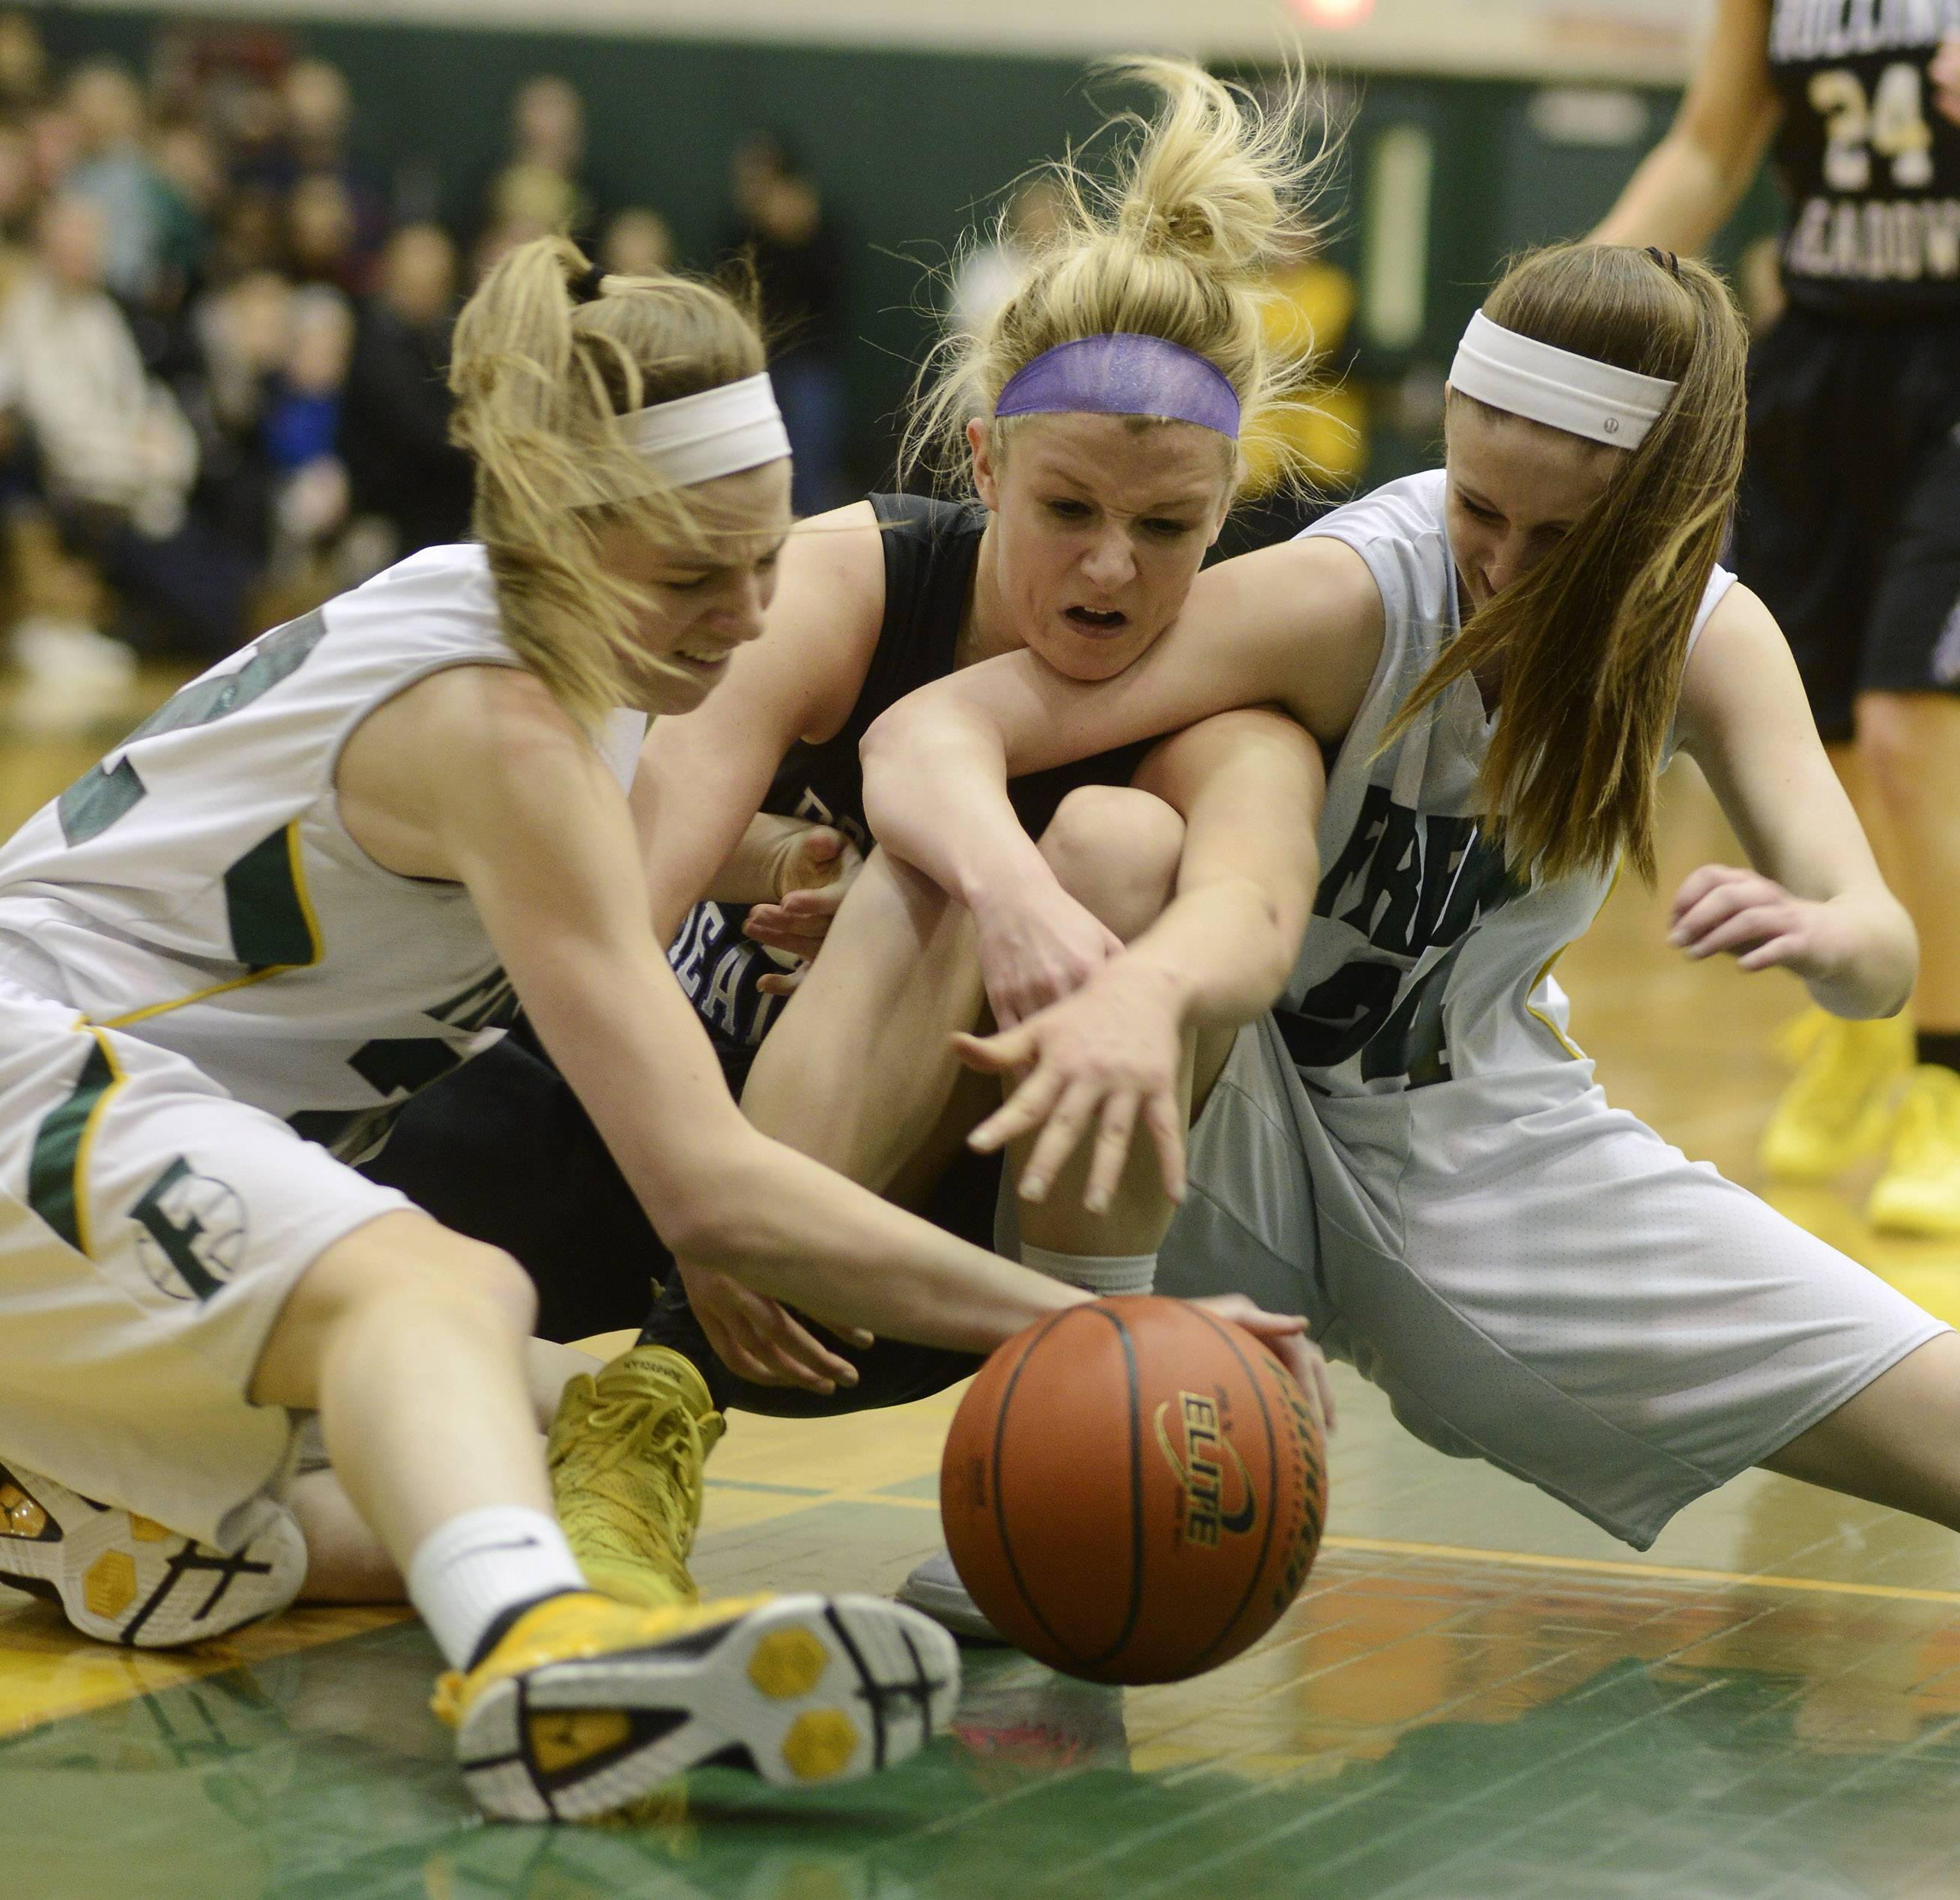 Rolling Meadows' Jenny Vliet gets between Fremd's Erin Lenahan, left, and Hannah LaBarge, right, in an attempt to control a loose ball during Wednesday's Mid-Suburban League championship game in Palatine.